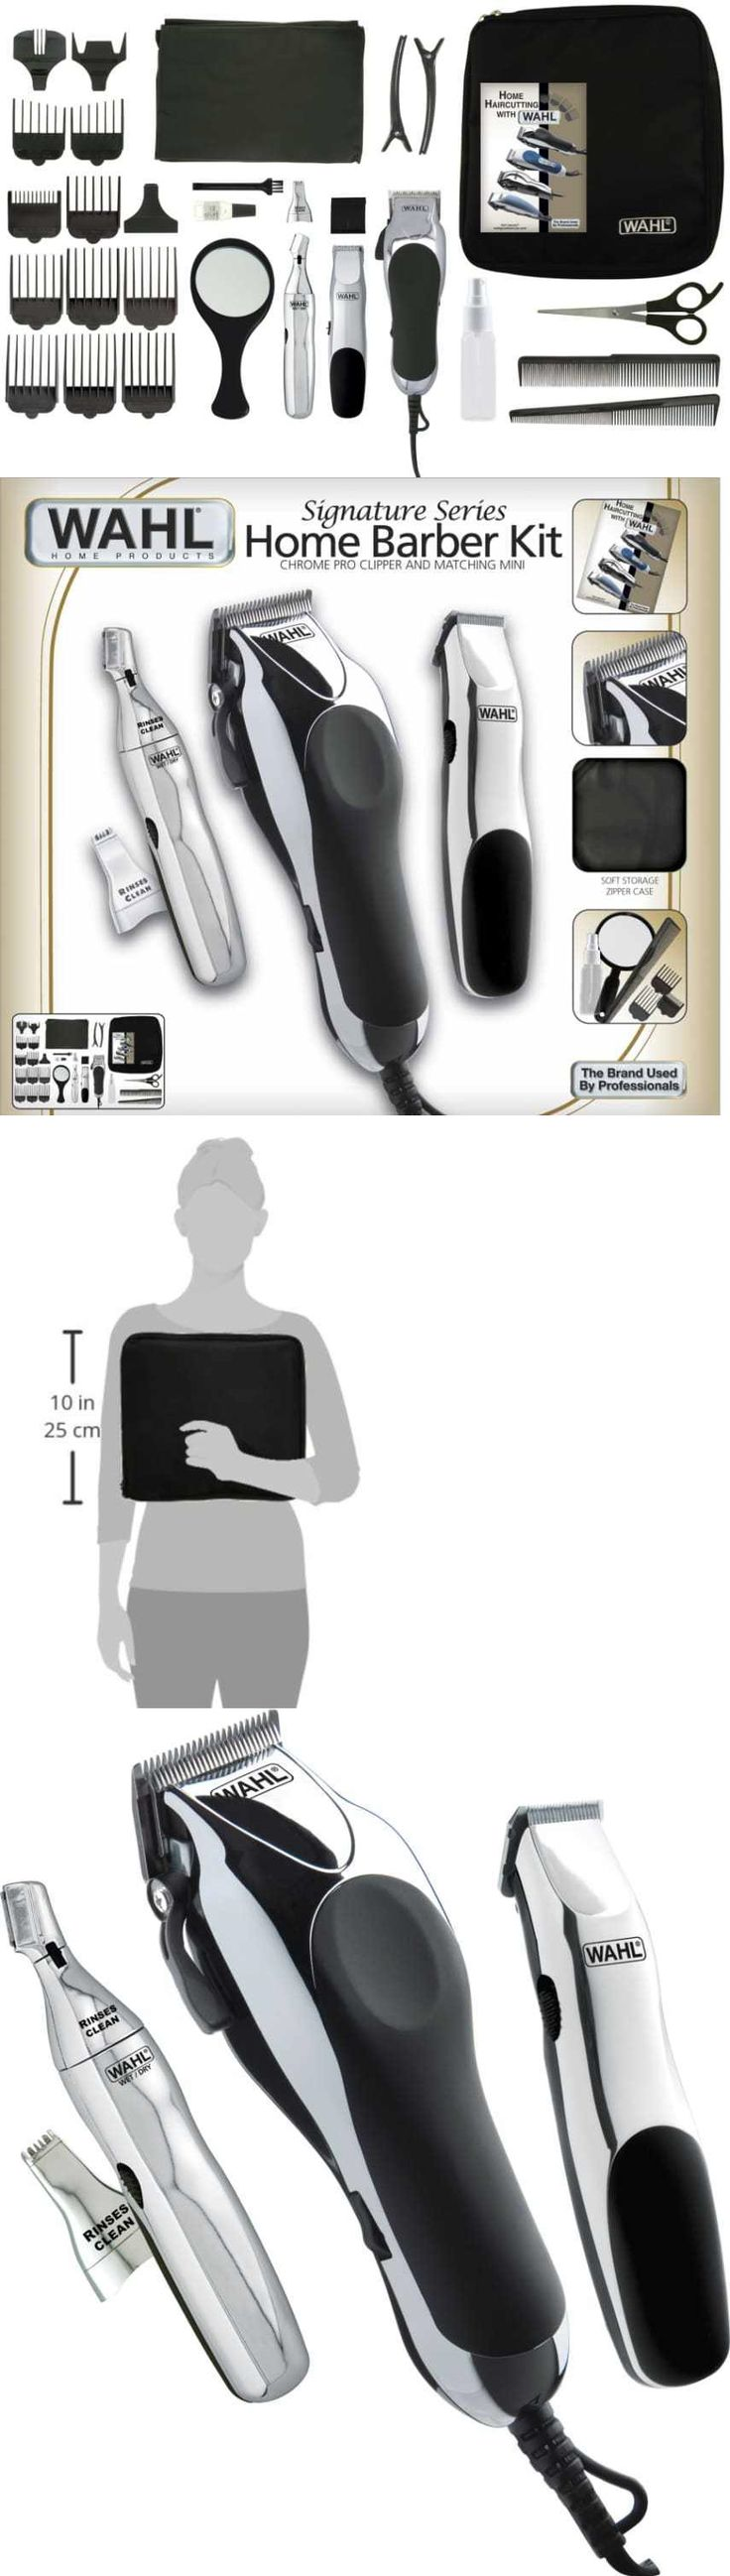 Shaving: Cordless Hair Clippers Trimmer Wahl Professional Cut Shaver Salon Barber Kit Pro BUY IT NOW ONLY: $62.09